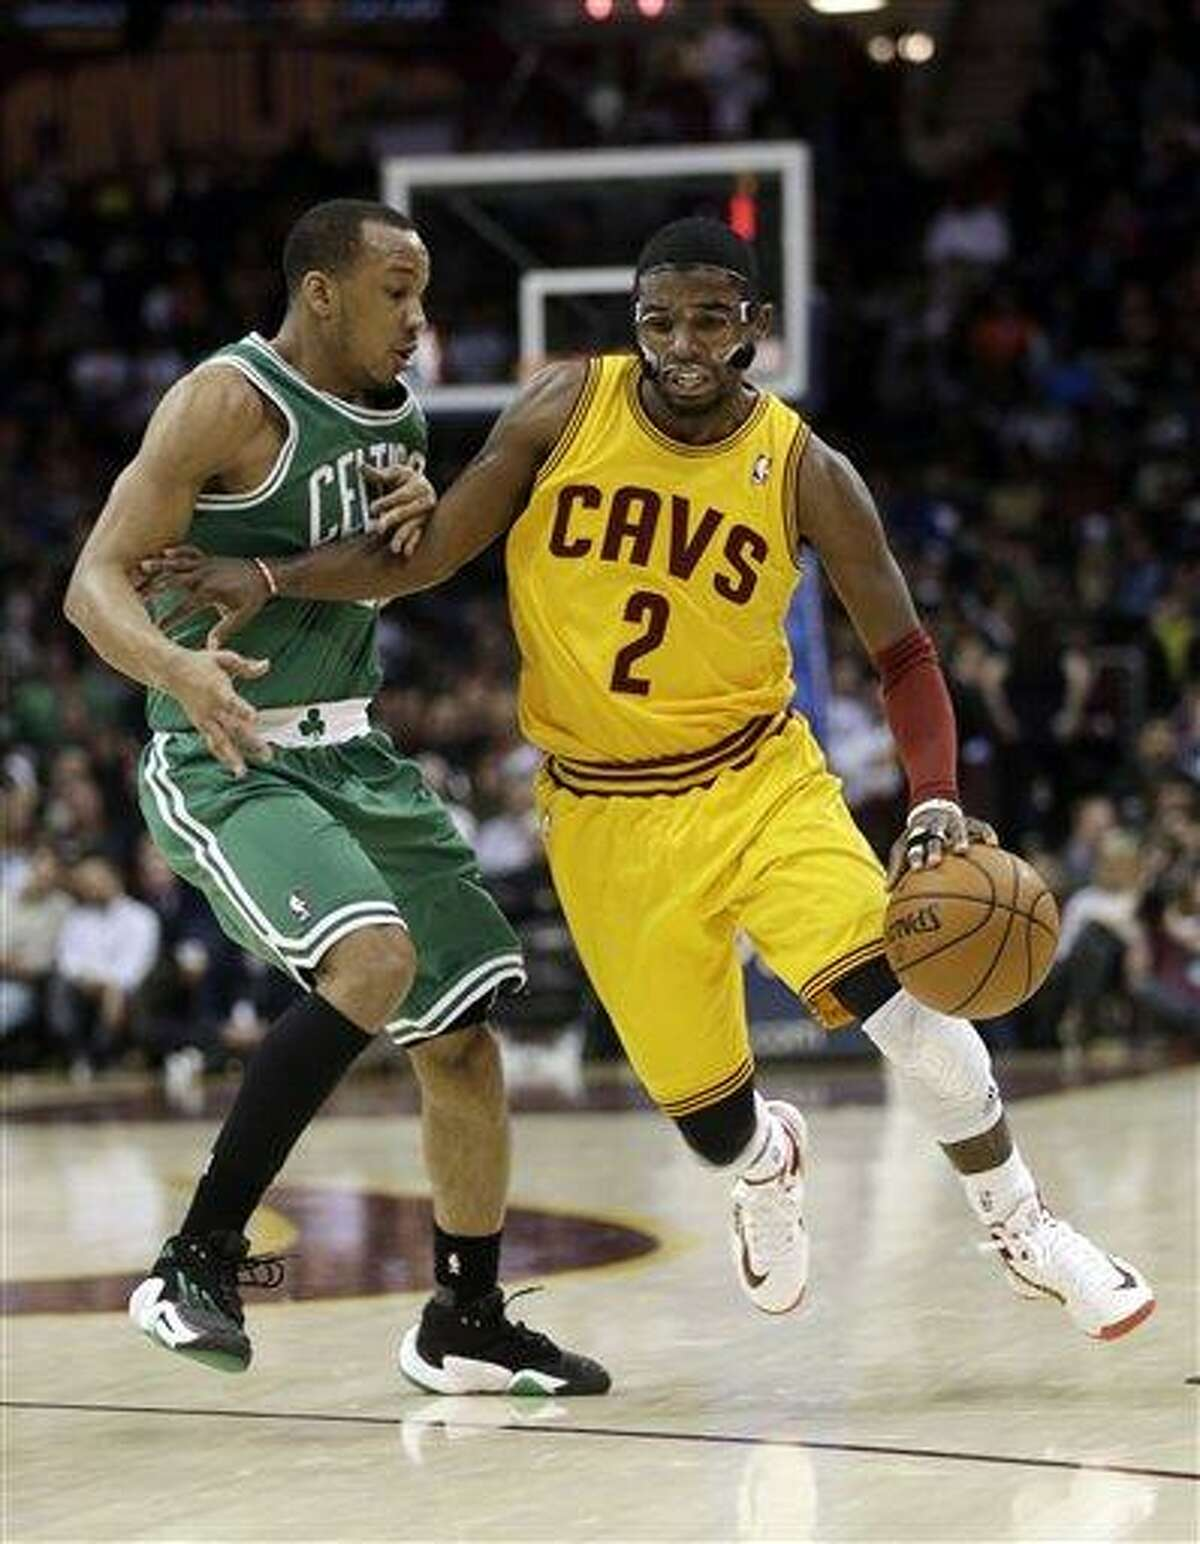 Cleveland Cavaliers' Kyrie Irving (2) drives past Boston Celtics' Avery Bradley (0) during the second quarter of an NBA basketball game Tuesday, Jan. 22, 2013, in Cleveland. (AP Photo/Tony Dejak)